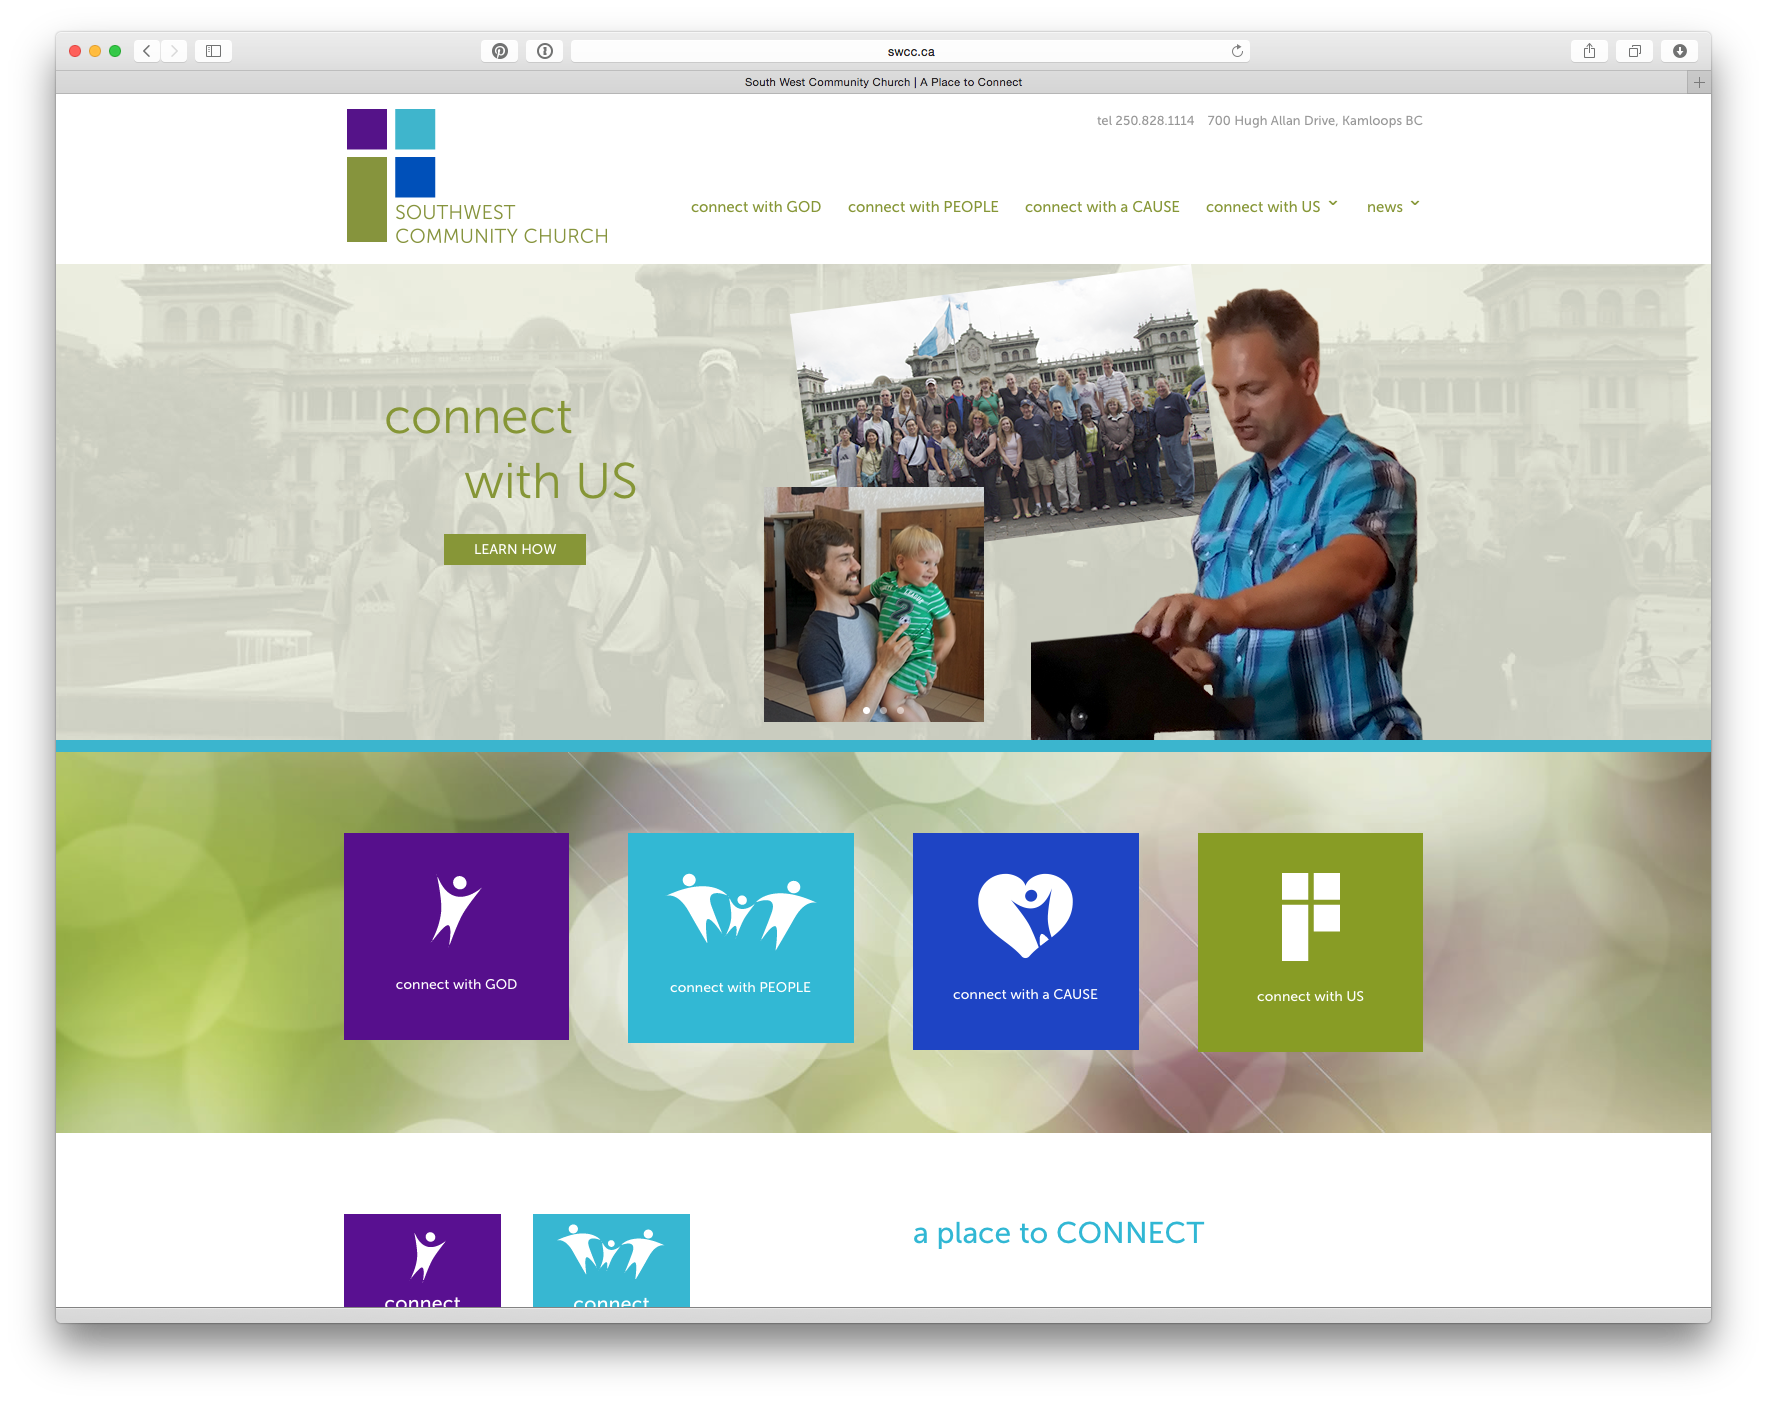 Southwest Community Church web